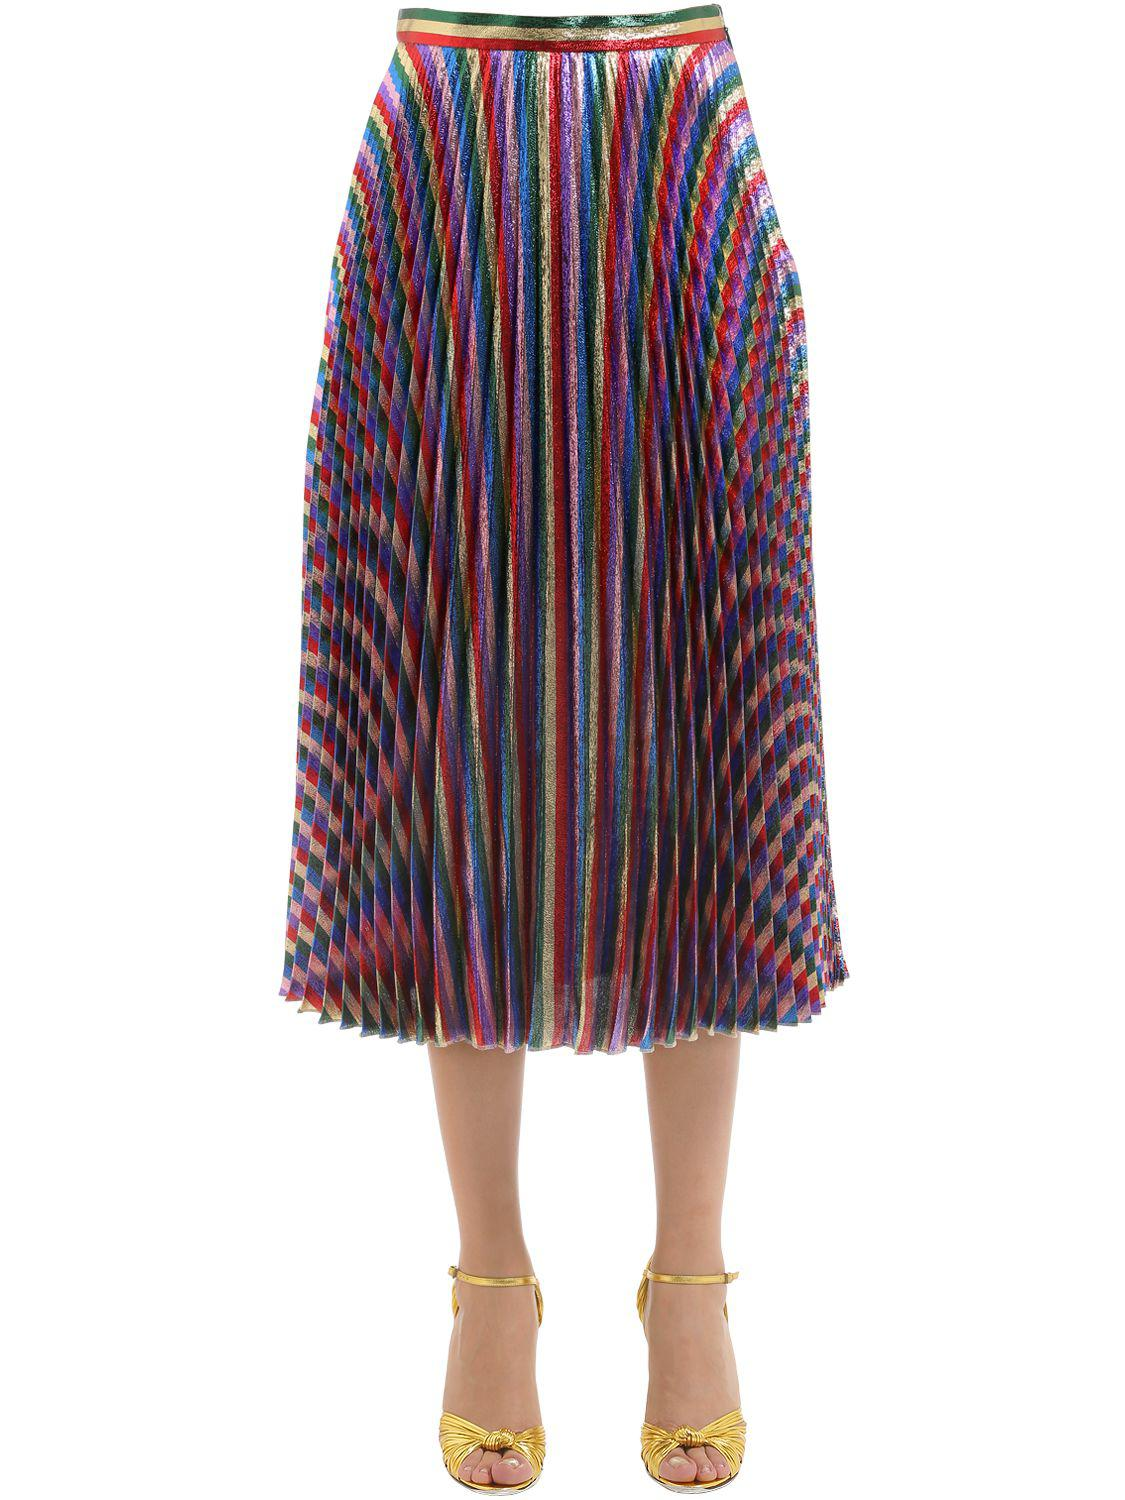 Gucci. Women's Rainbow Lurex Plisse Midi Skirt